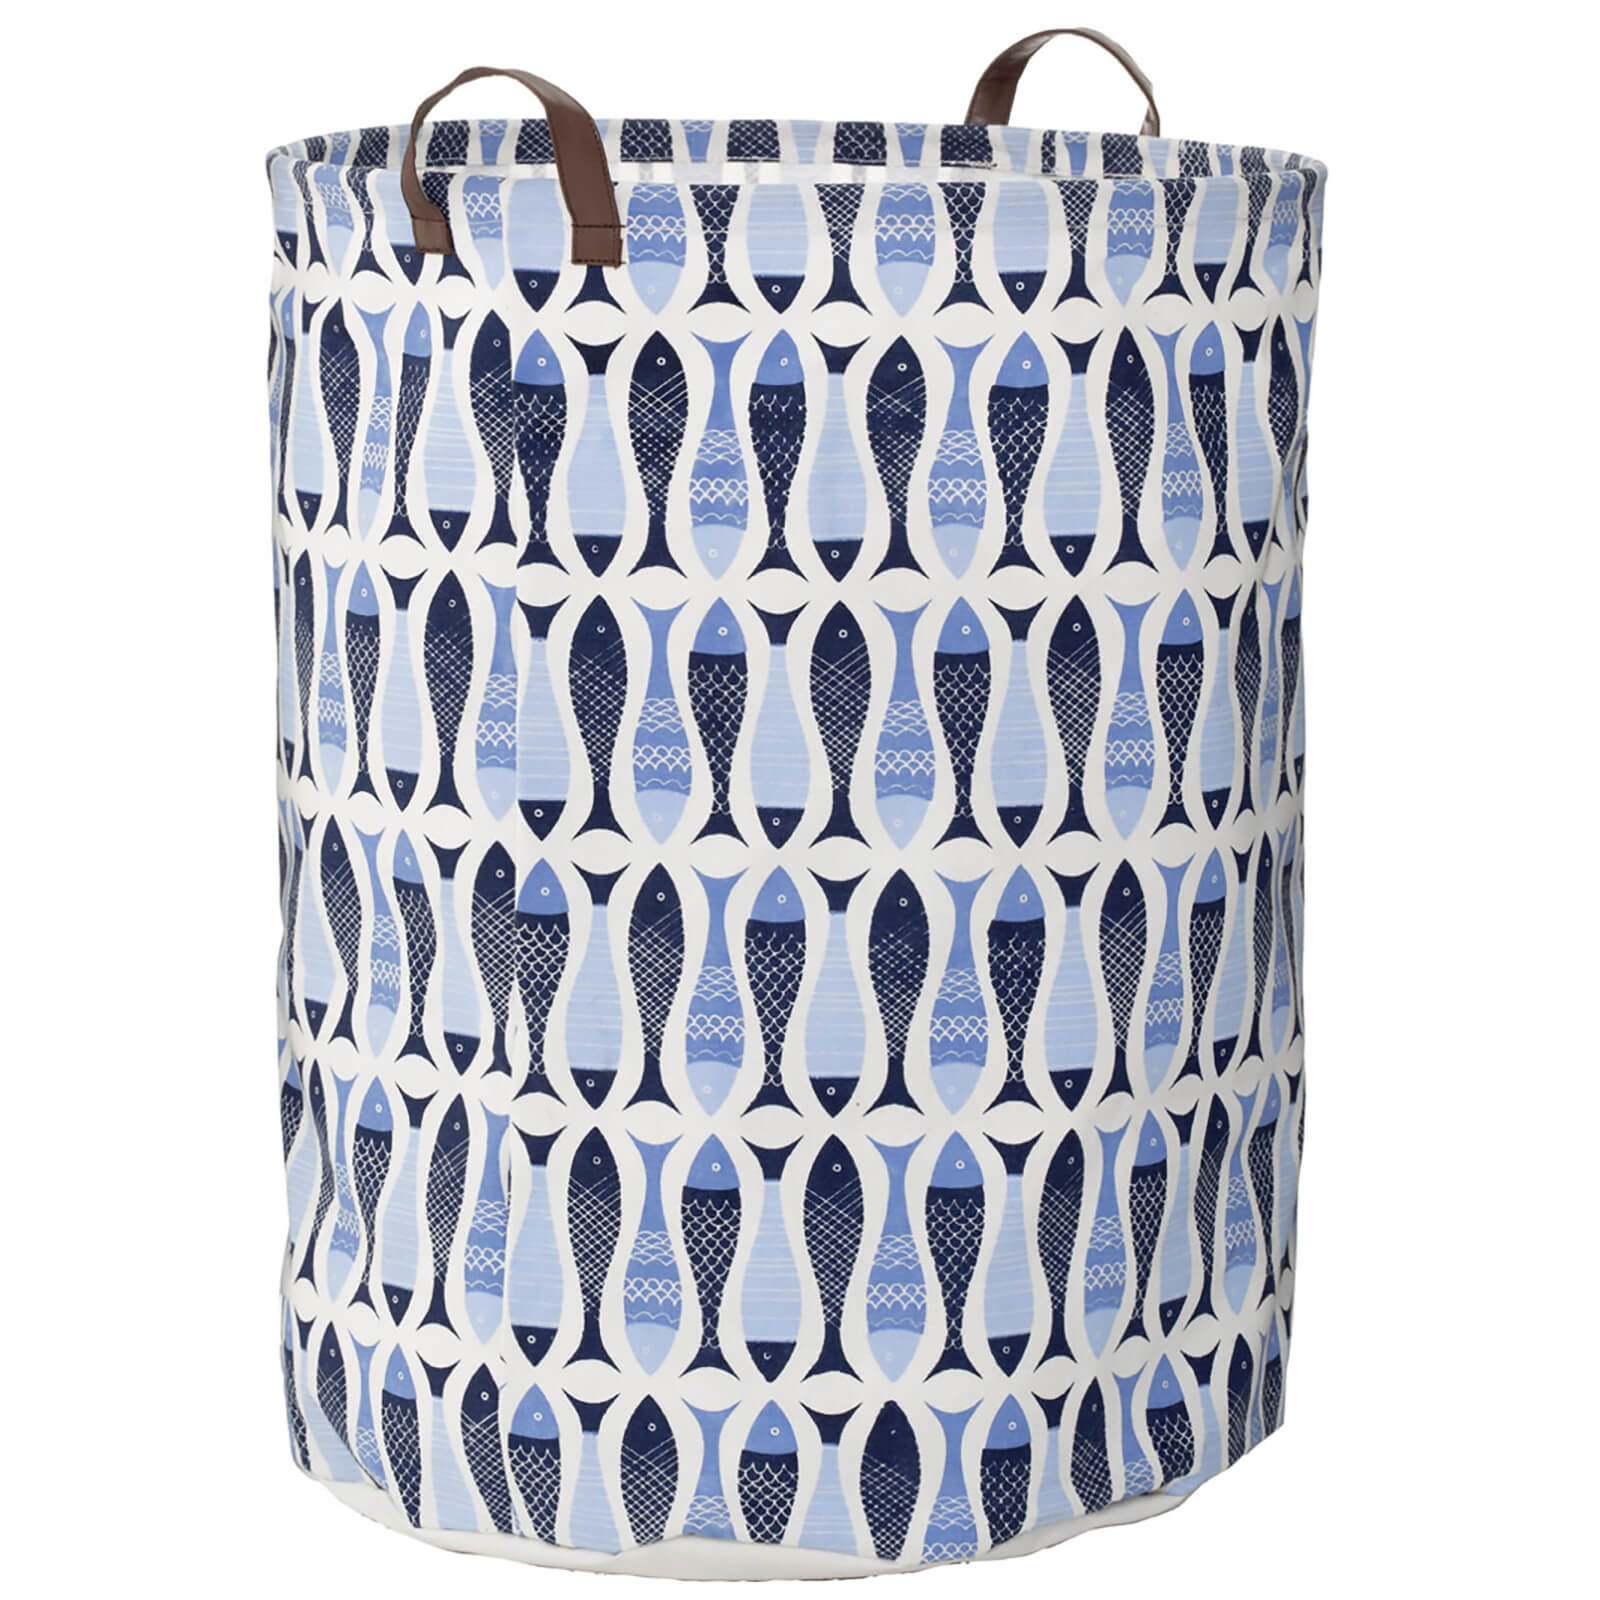 Fifty Five South Pisces Laundry Bag - Blue